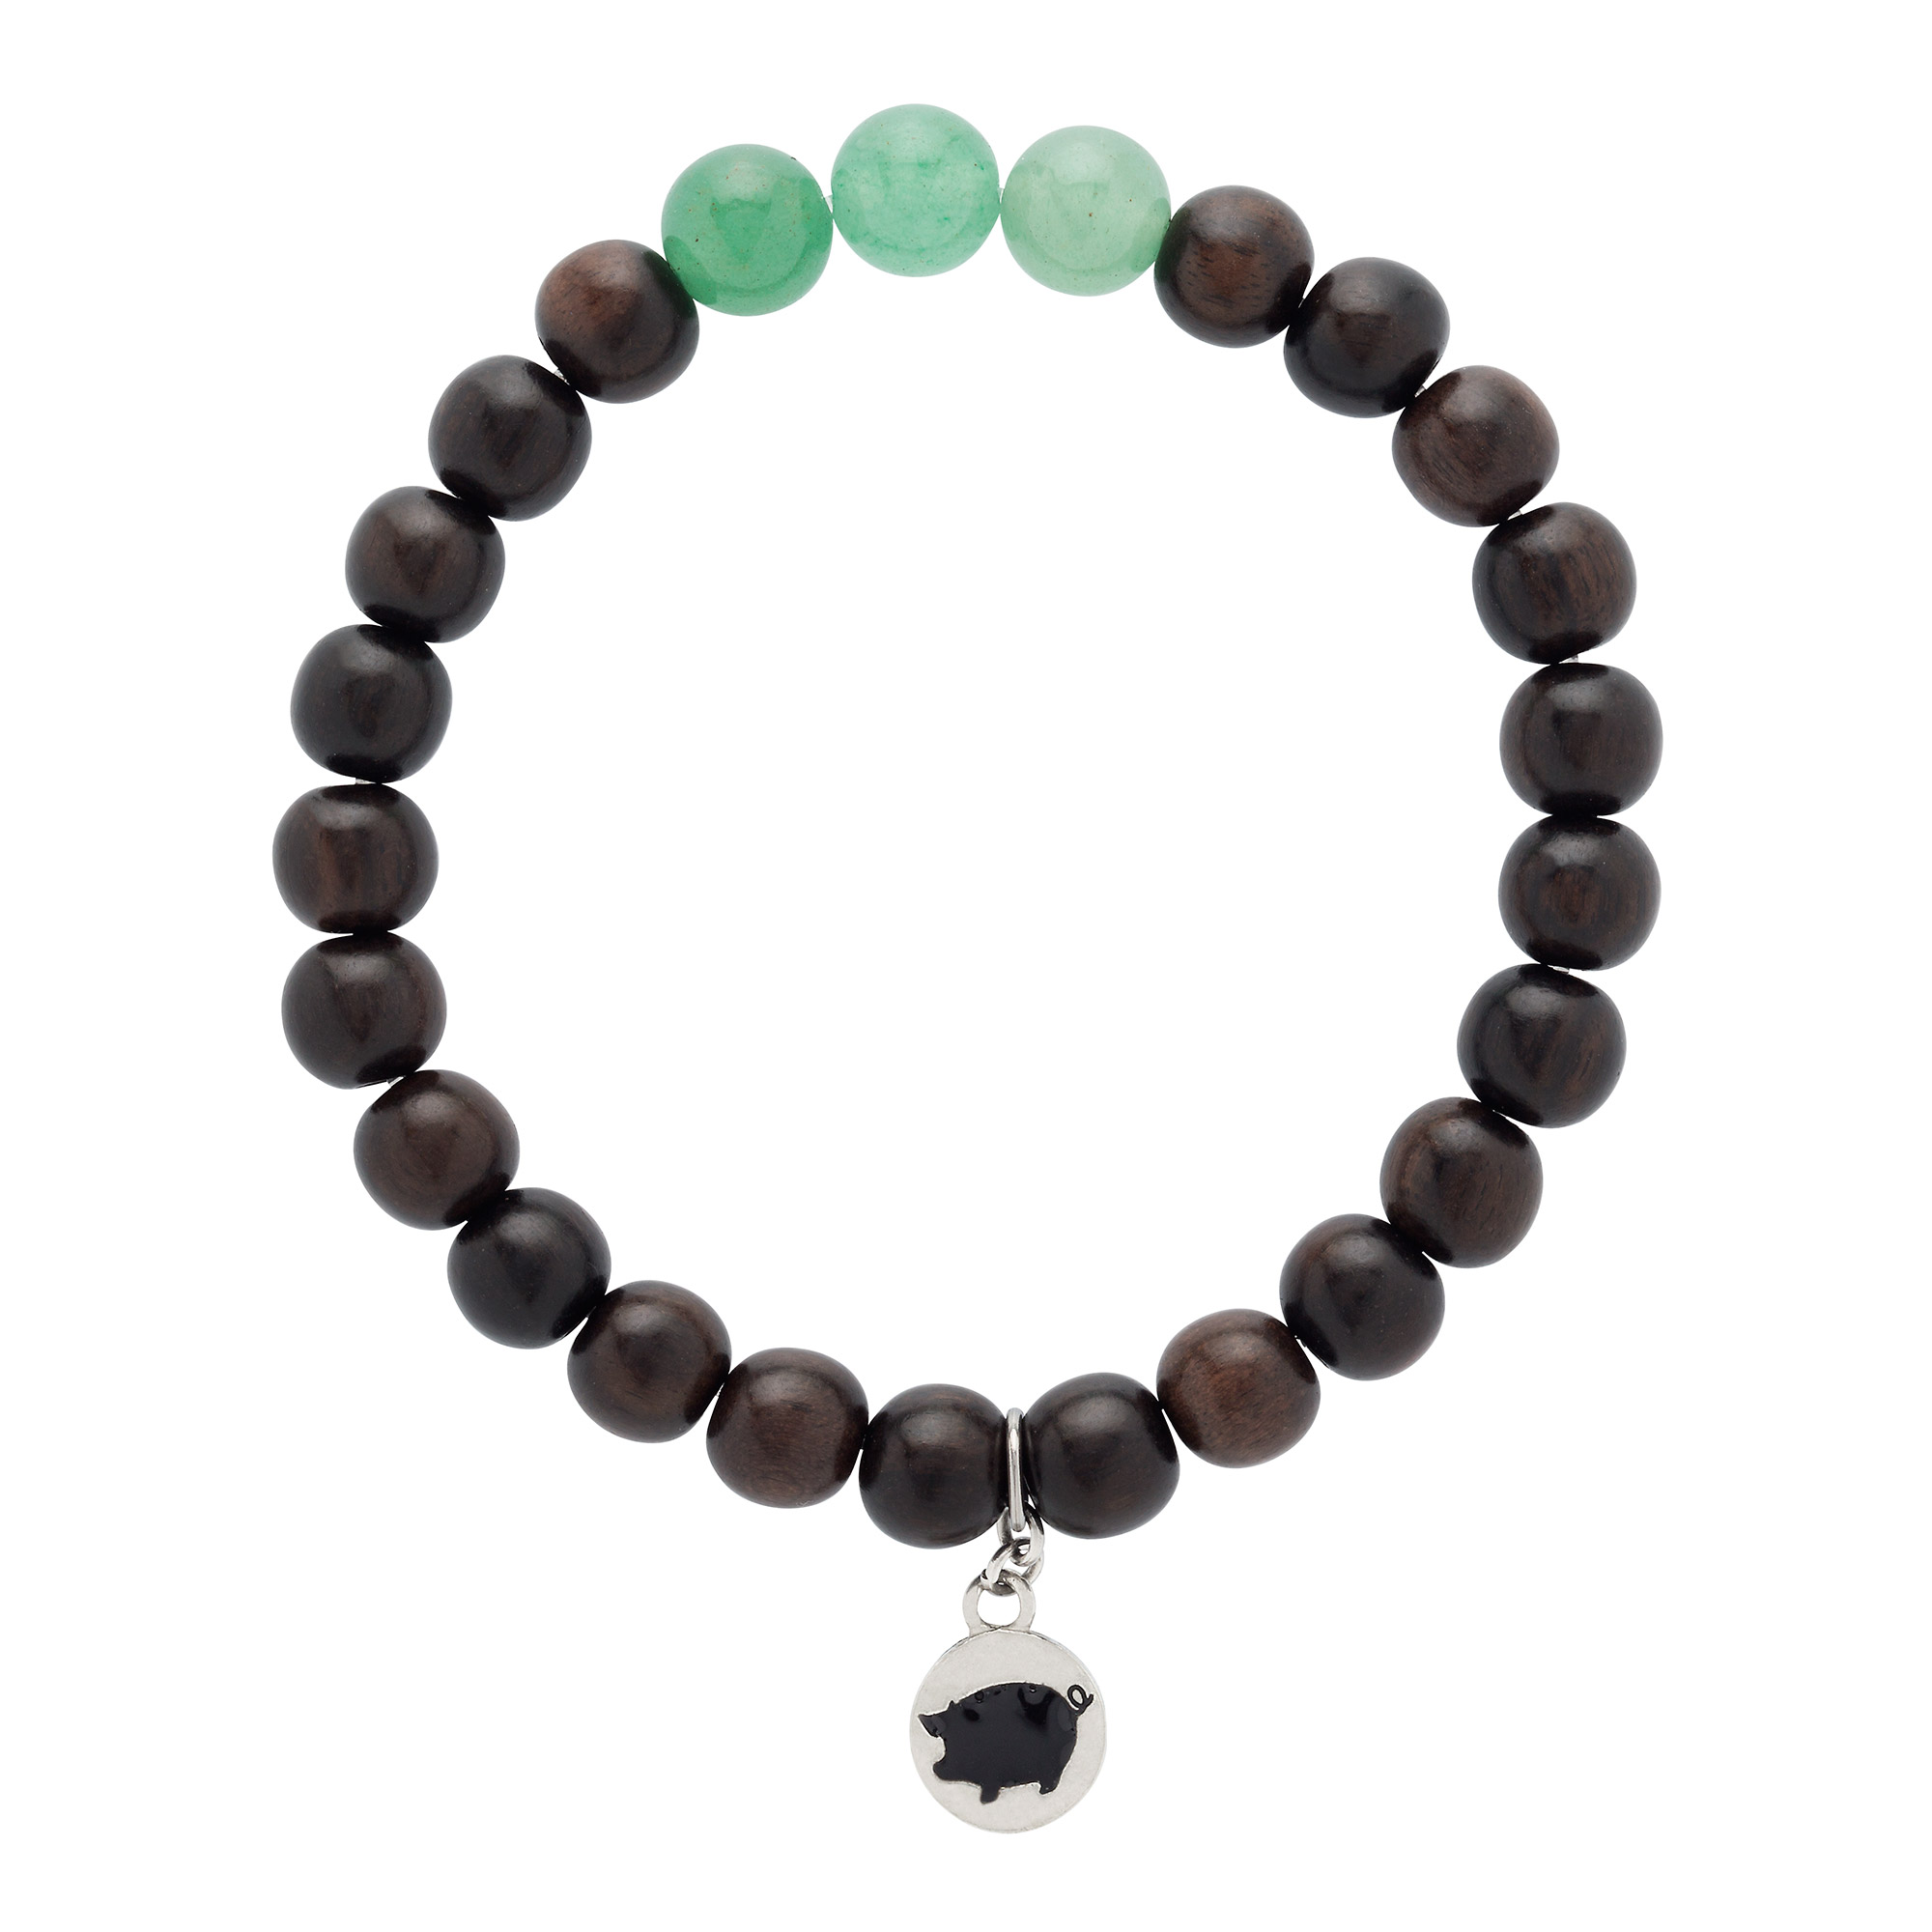 Featuring sustainable robles wood beads + a trio of green aventurine gemstones, all hand-strung on an elastic band for easy on-and-off styling.